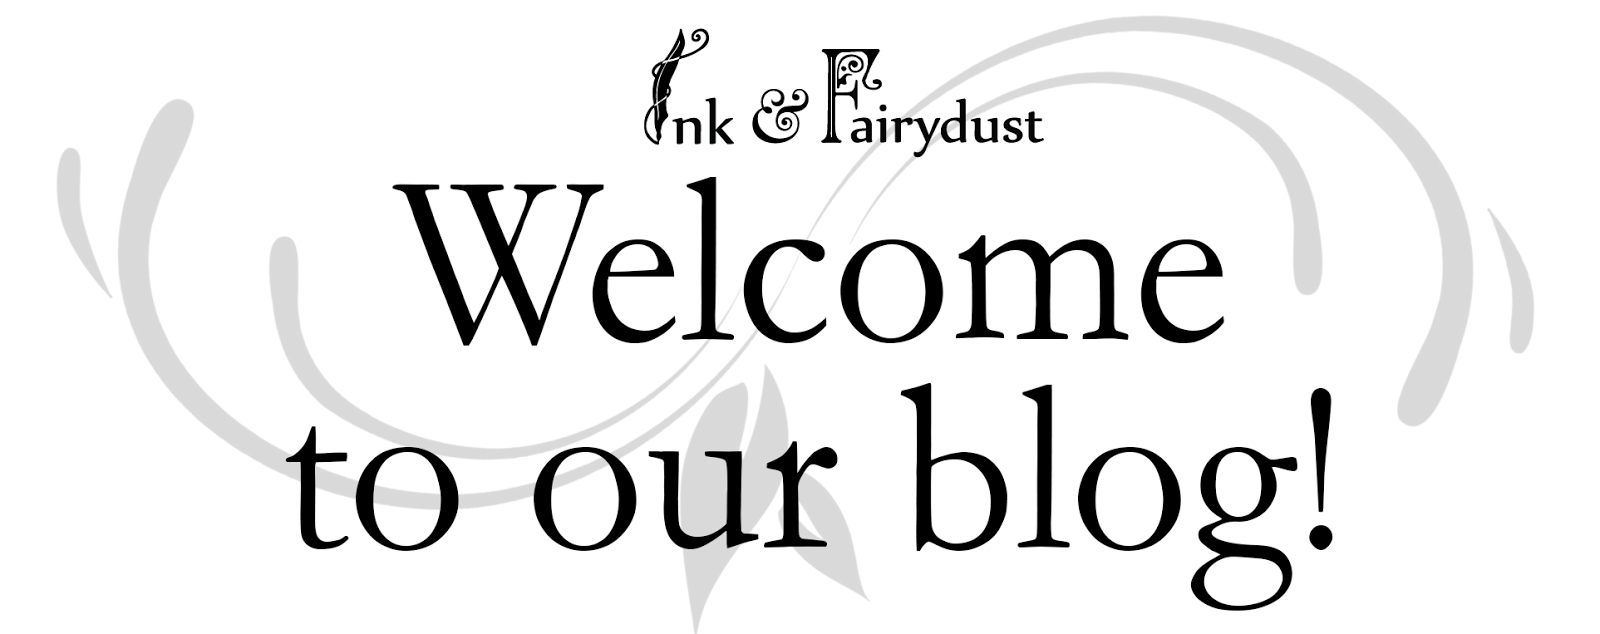 Ink and Fairydust is glad you're here!